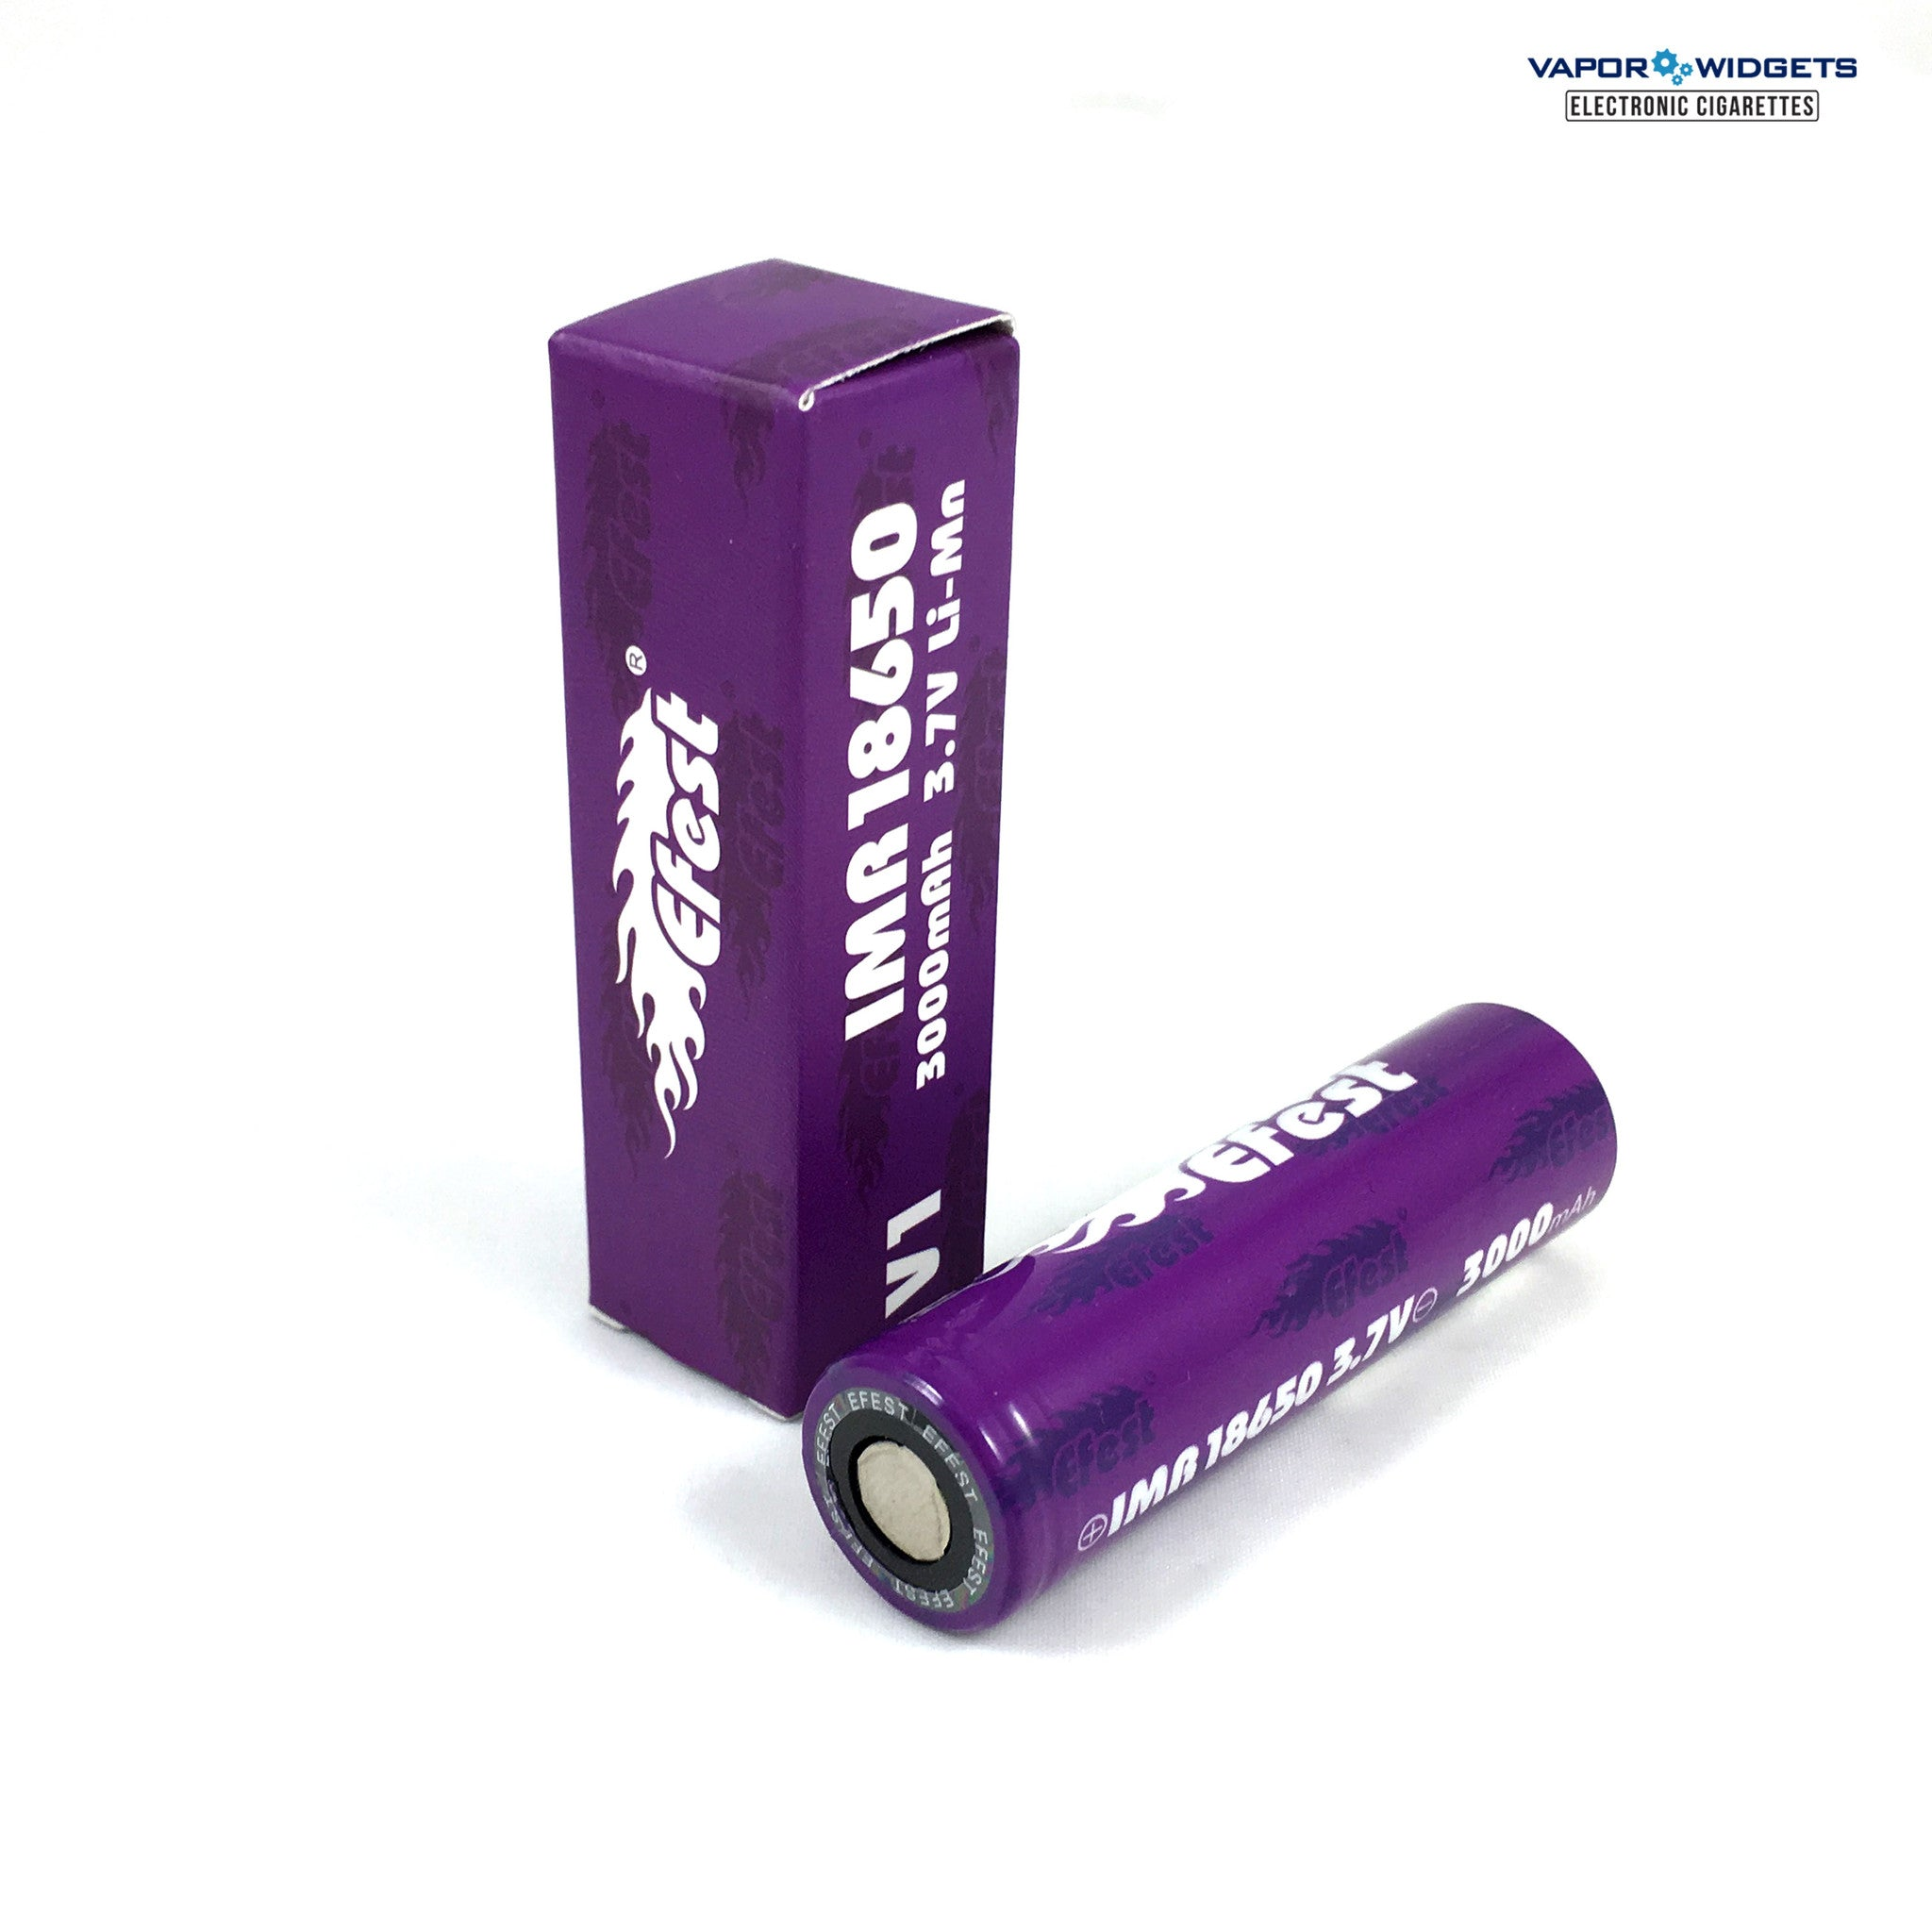 Best quality Purple Efest IMR 18650 high drain vape MOD Batteries 3.7V, 3000mAh, 35A - Vapor Widgets